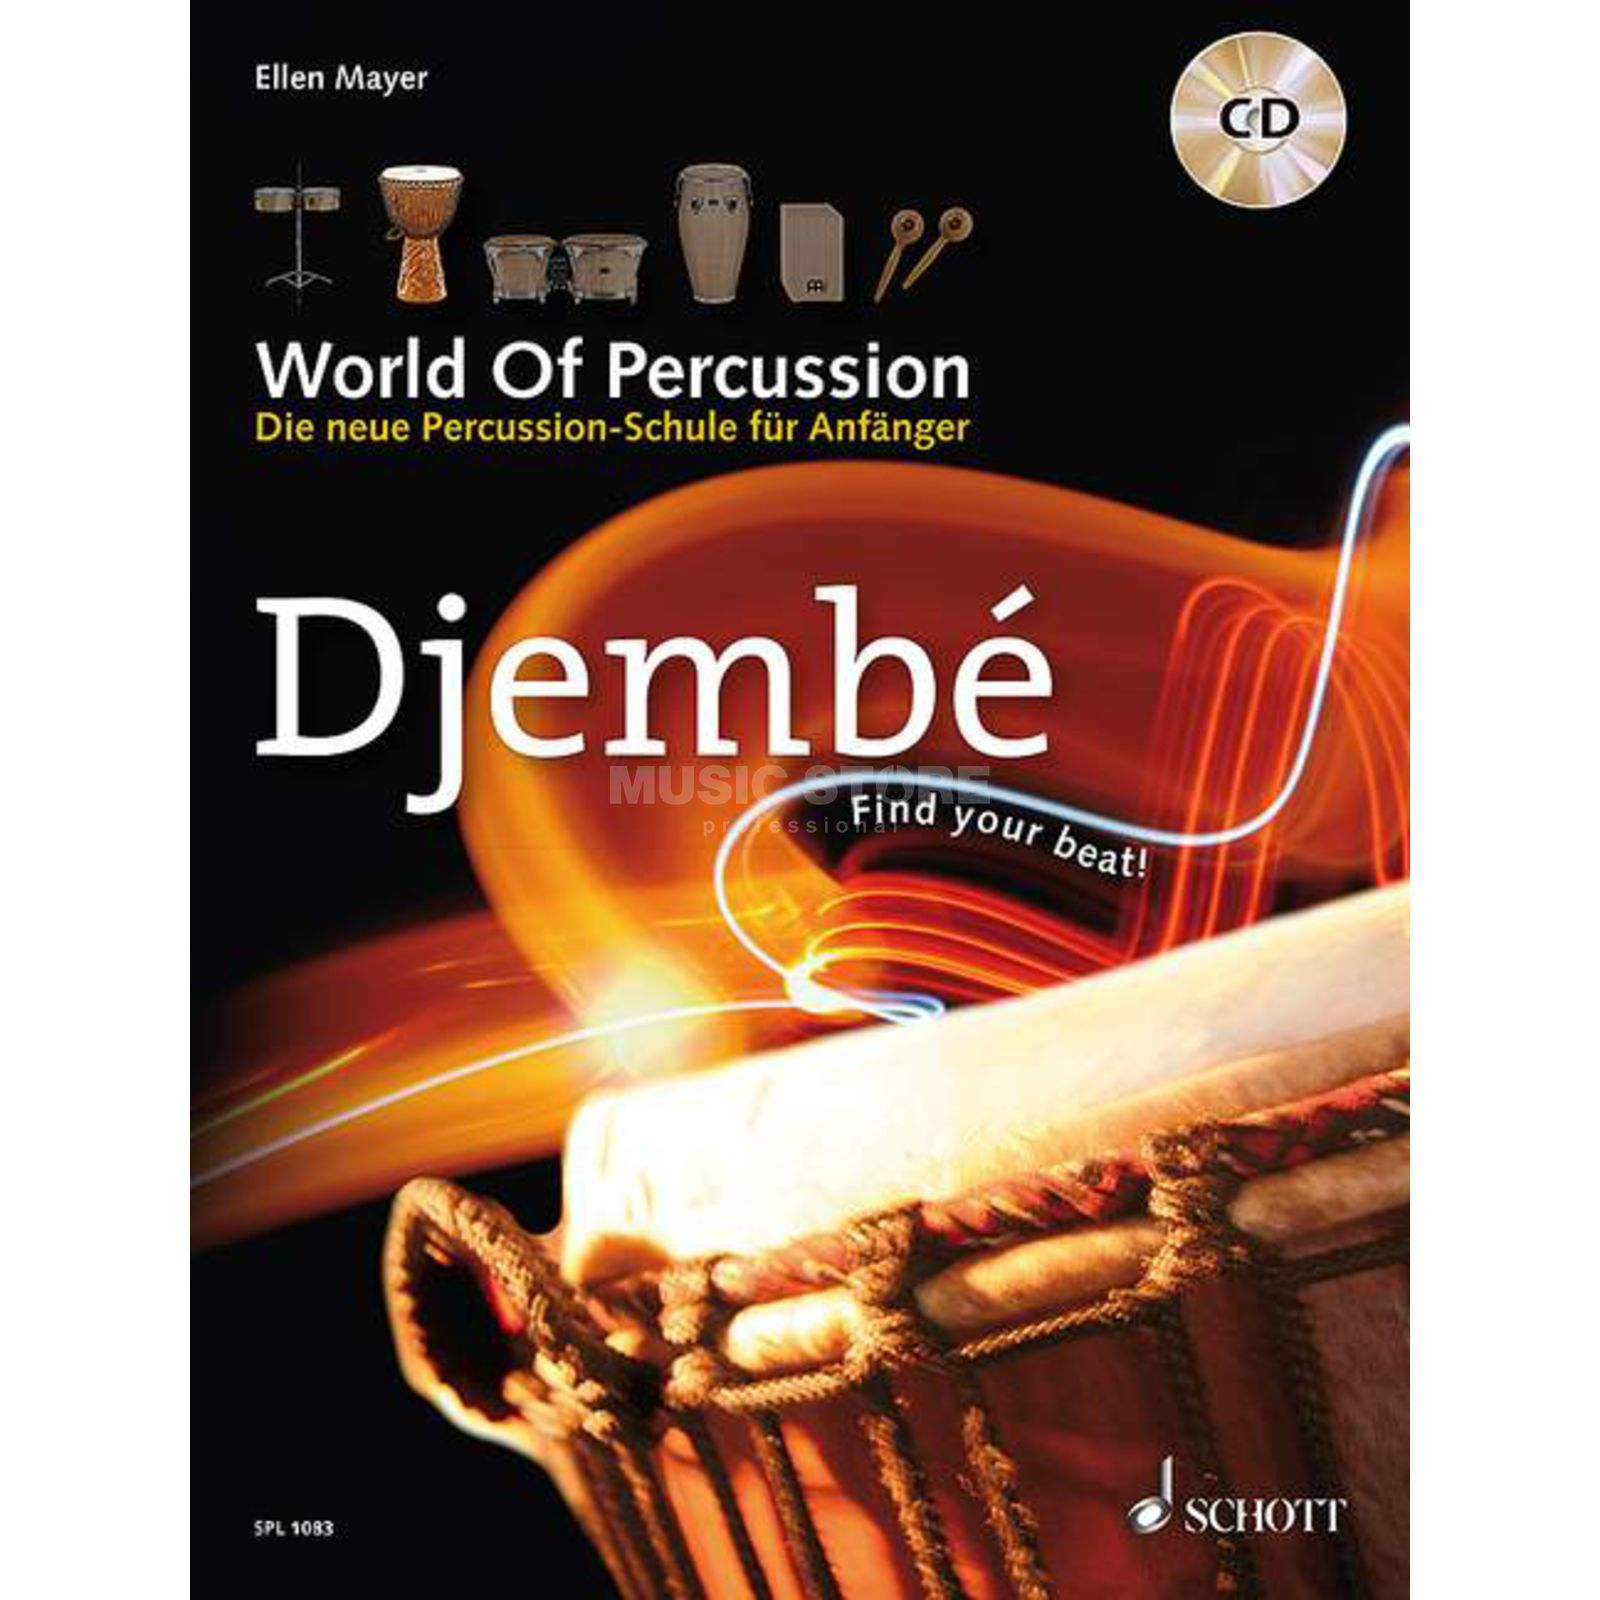 Schott Music Djembe, World Of Percussion Ellen Mayer, mit CD Product Image